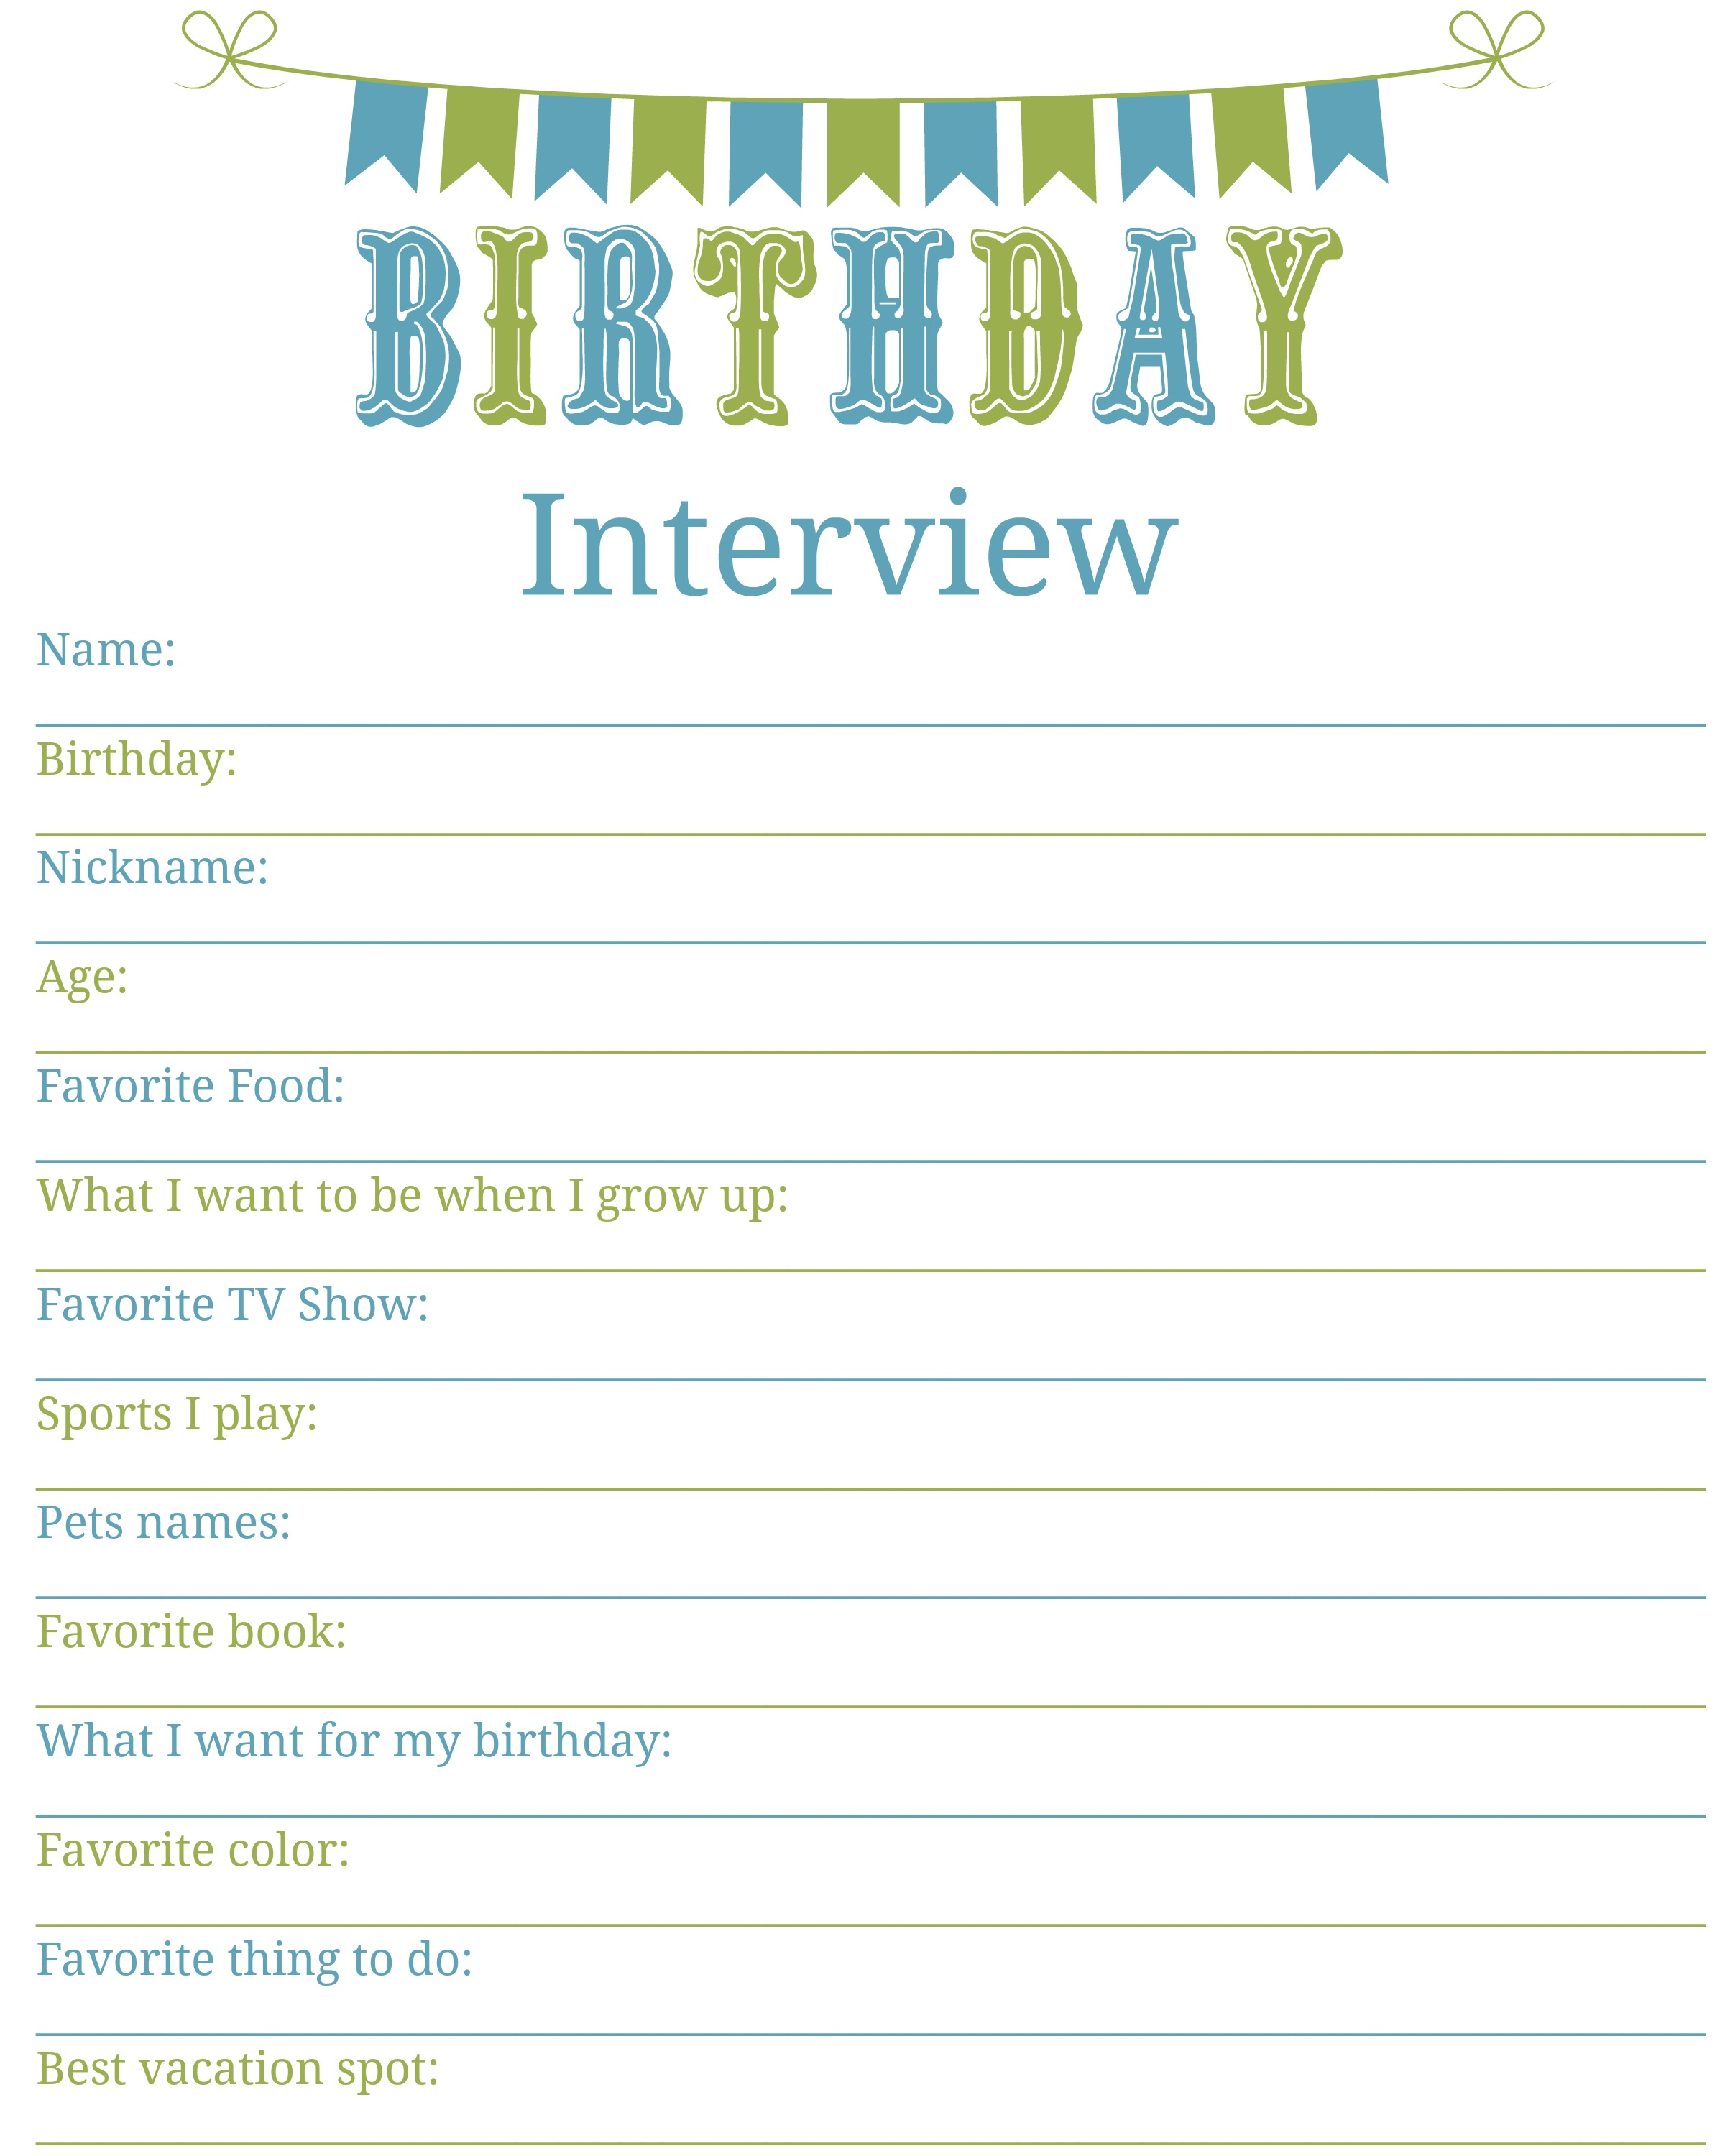 printables archives living a sunshine life birthday interview printable